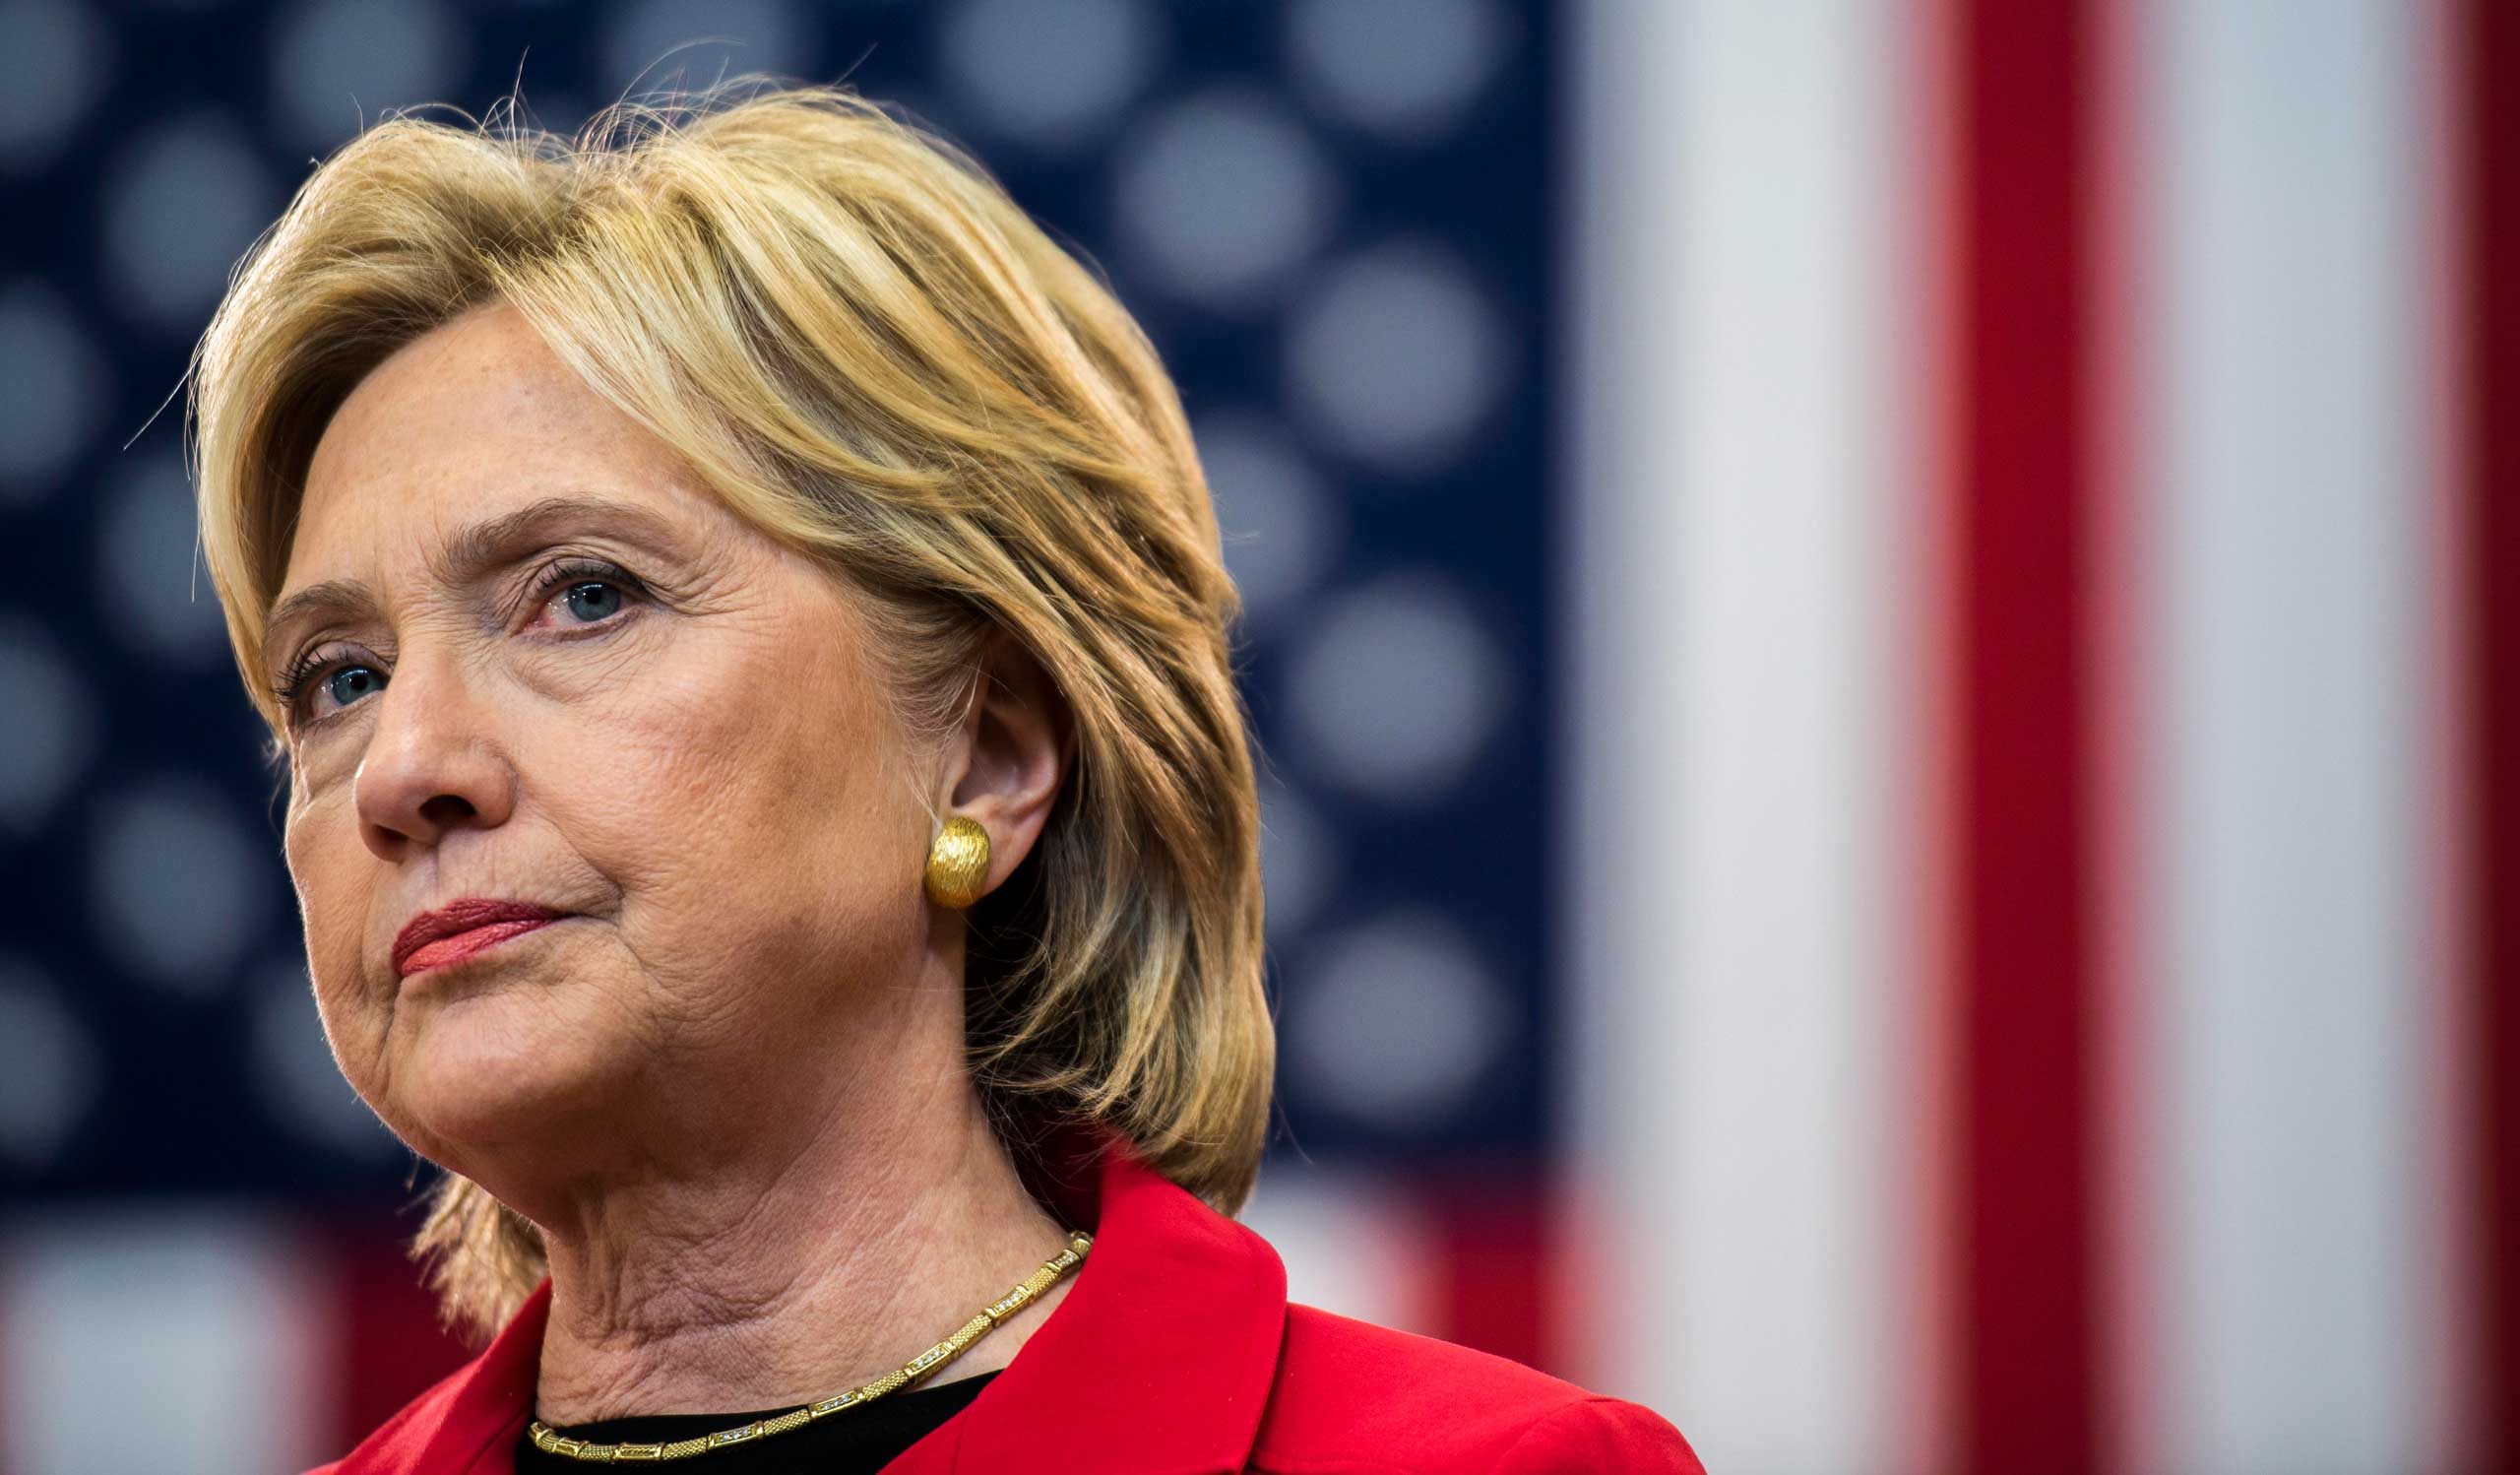 Democratic Presidential candidate Hillary Clinton speaks at a town hall event at Manchester Community College, on Oct. 5, 2015.